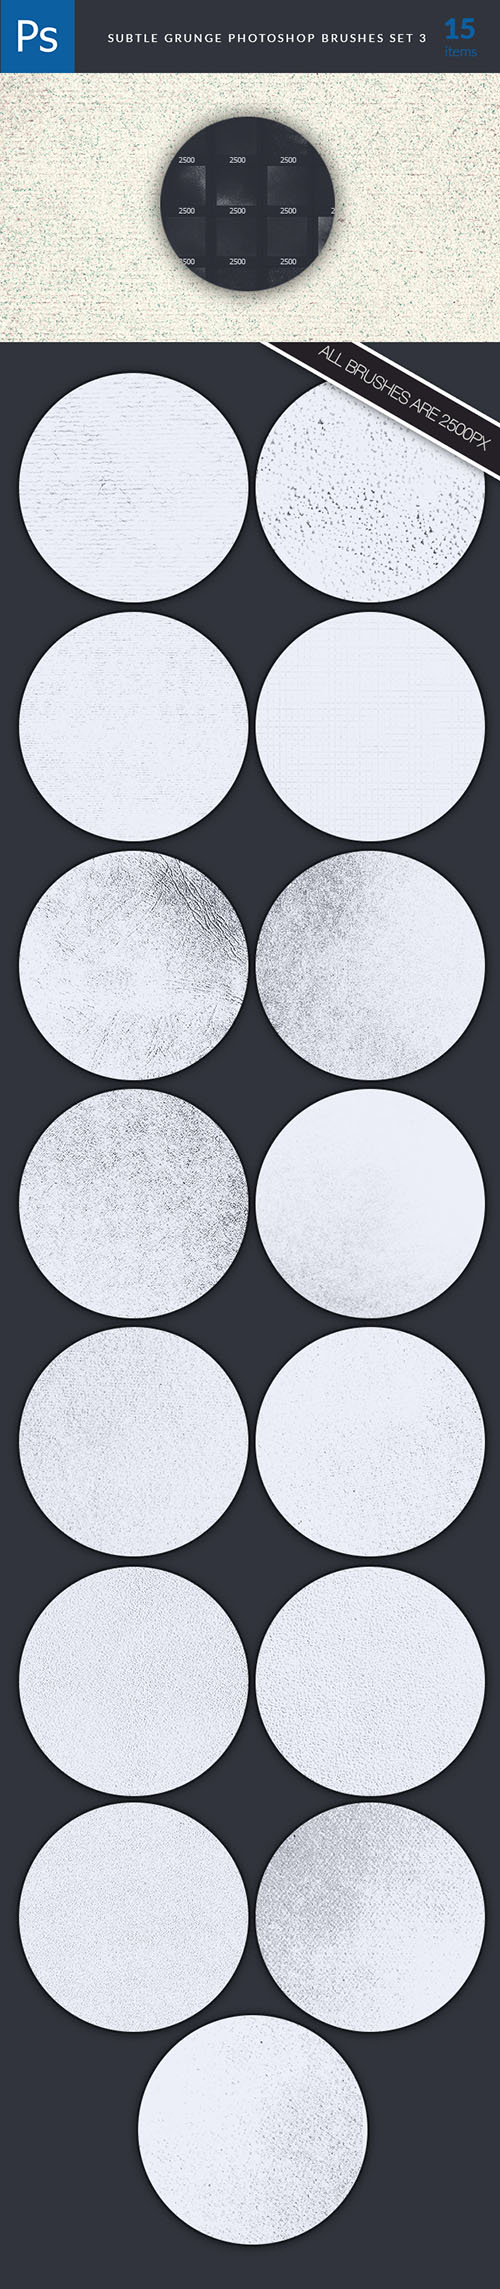 Subtle Grunges Photoshop Brushes Pack 3